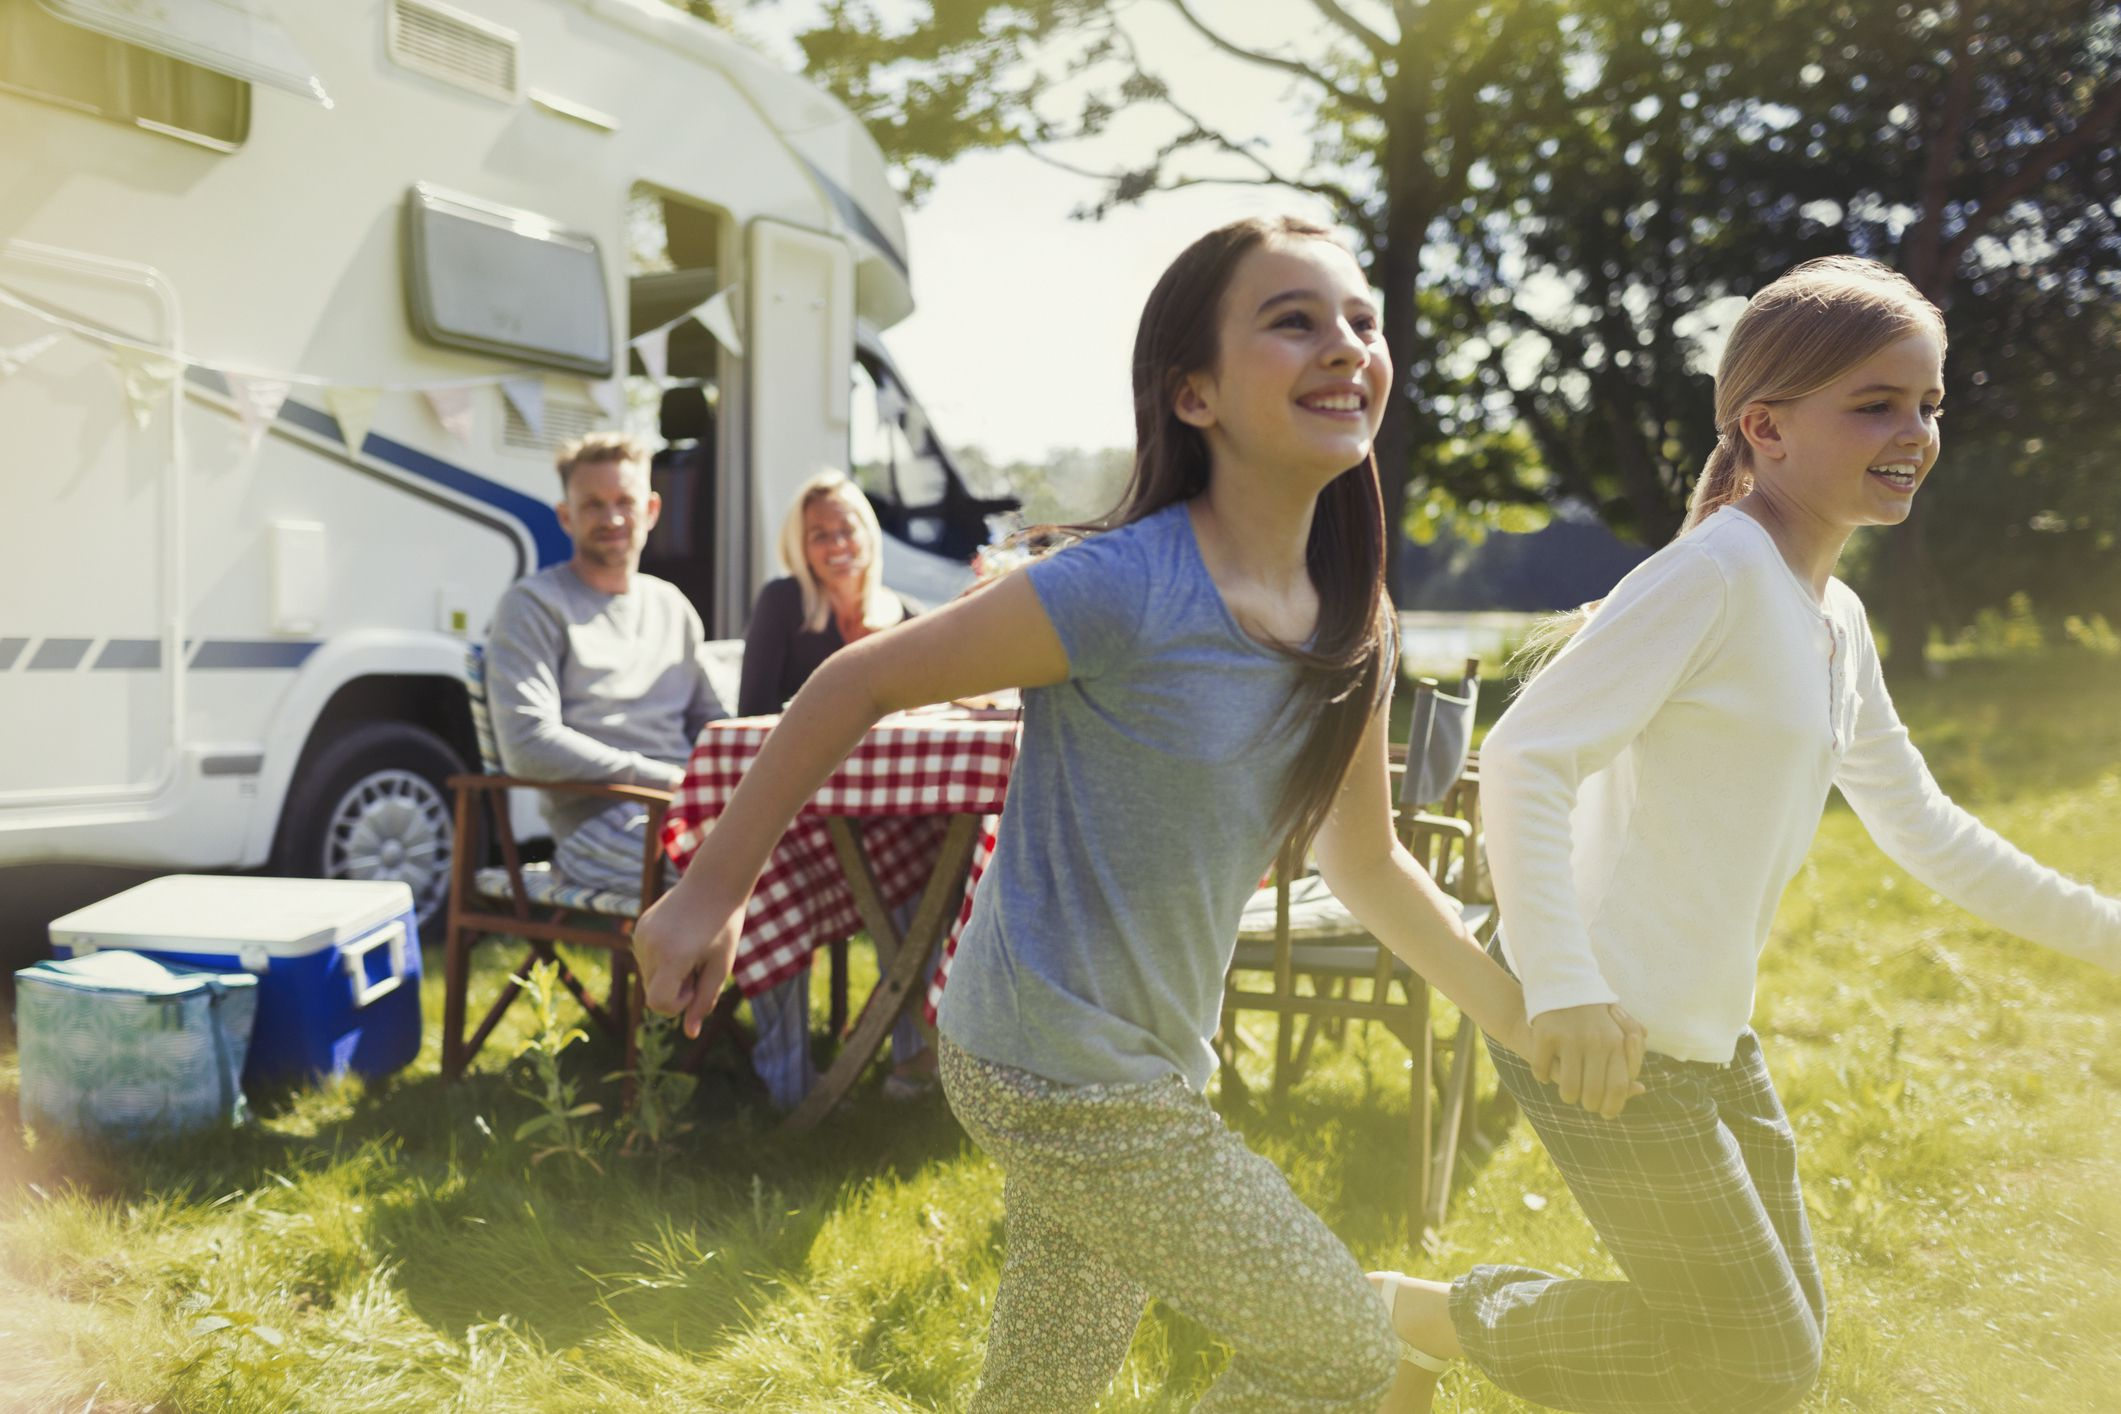 7 of the Best RV Parks for Families